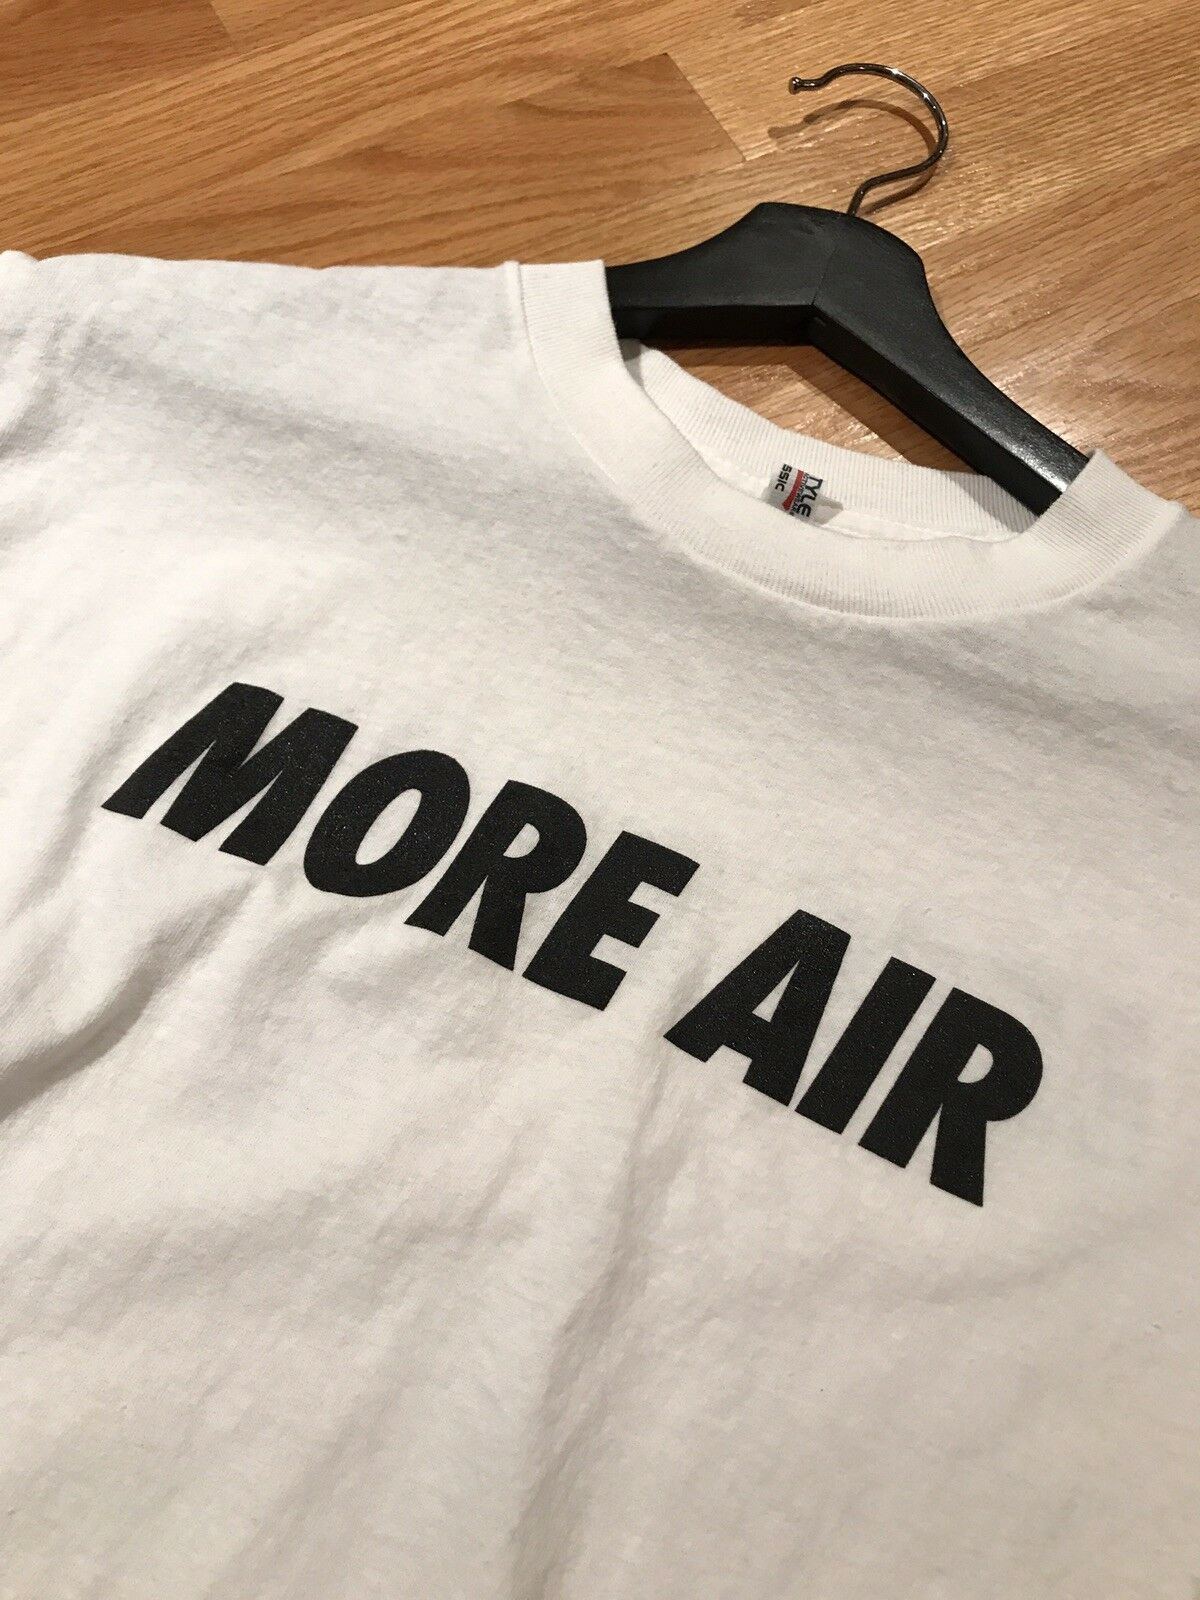 Sean Wotherspoon More Air Less Boost Authentic T Shirt Round Two M Tee